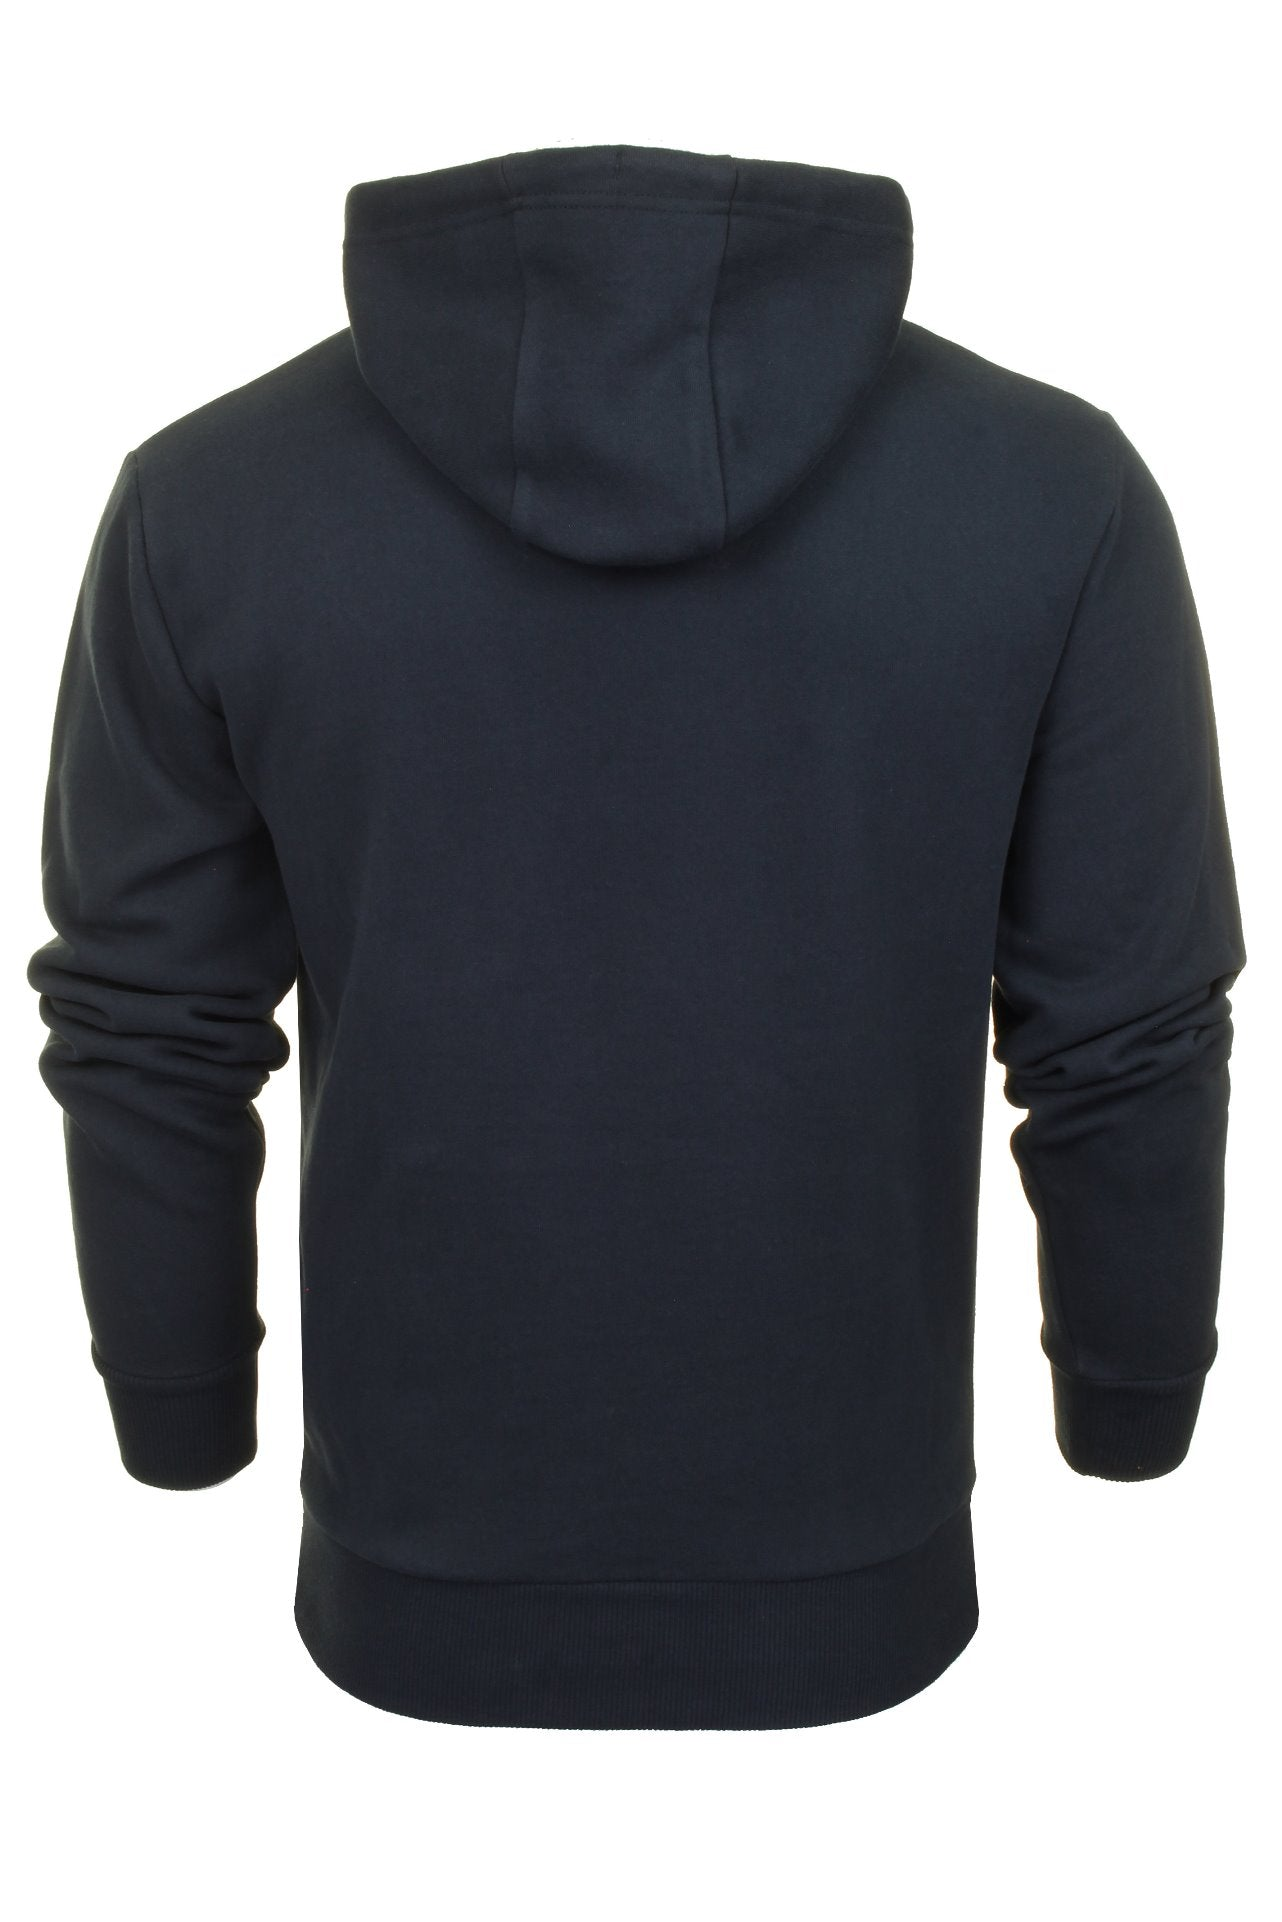 Ellesse Mens Logo Front Over Head Hoody 'GOTTERO' - Long Sleeved with Pockets-3